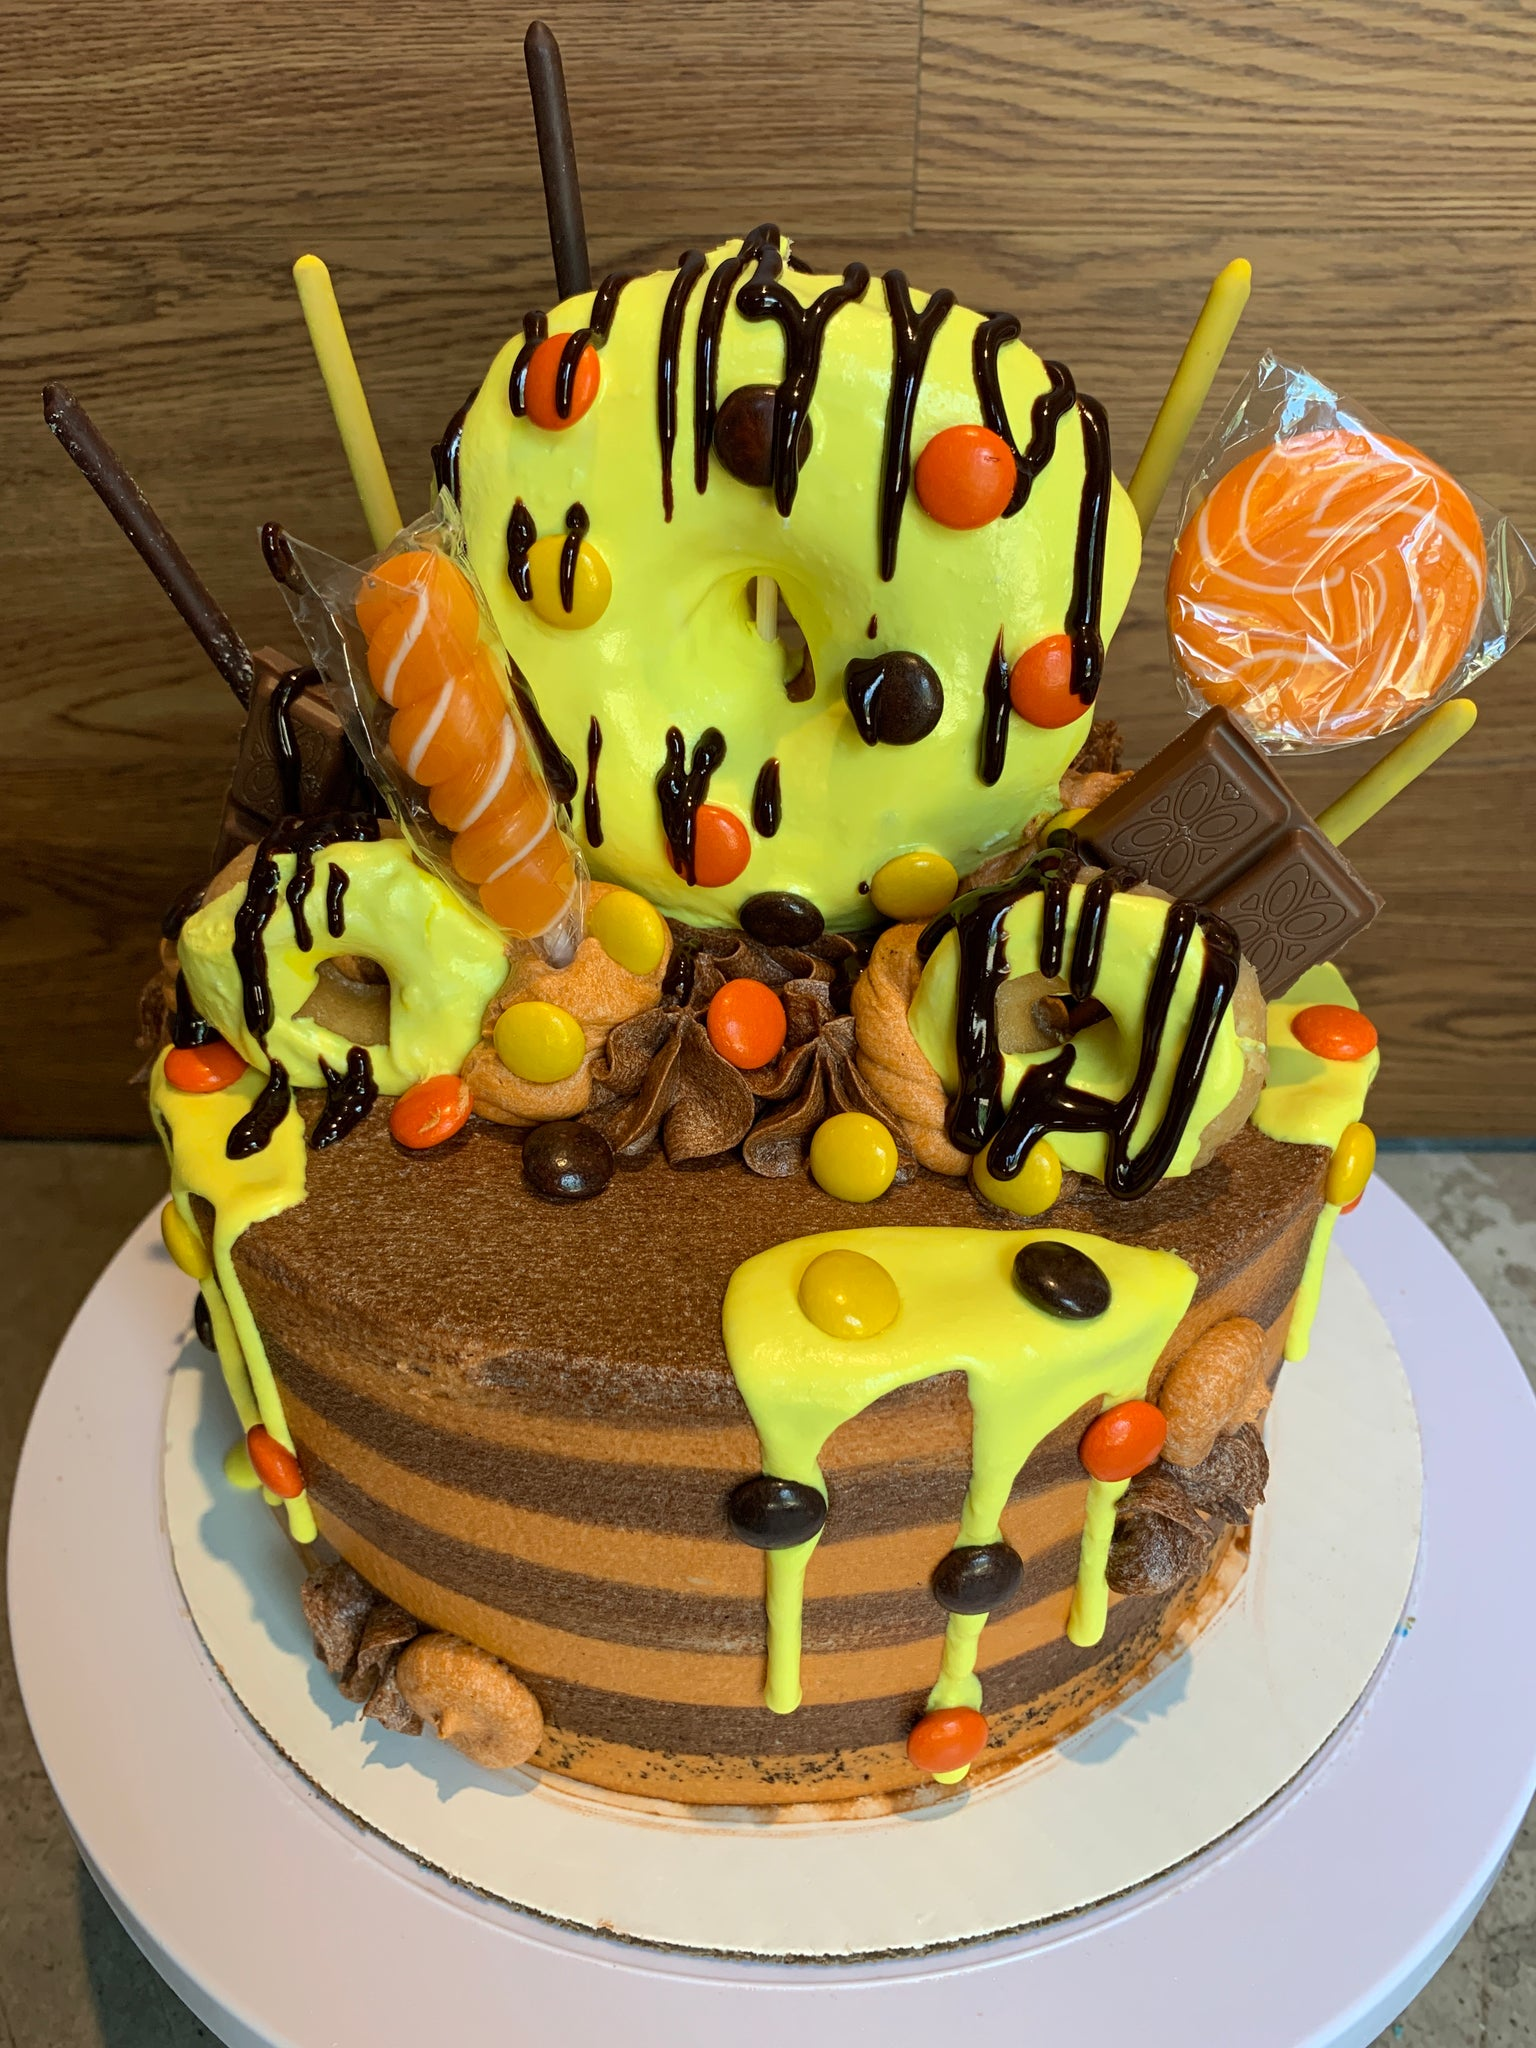 Reese's Pieces Explosion Cake